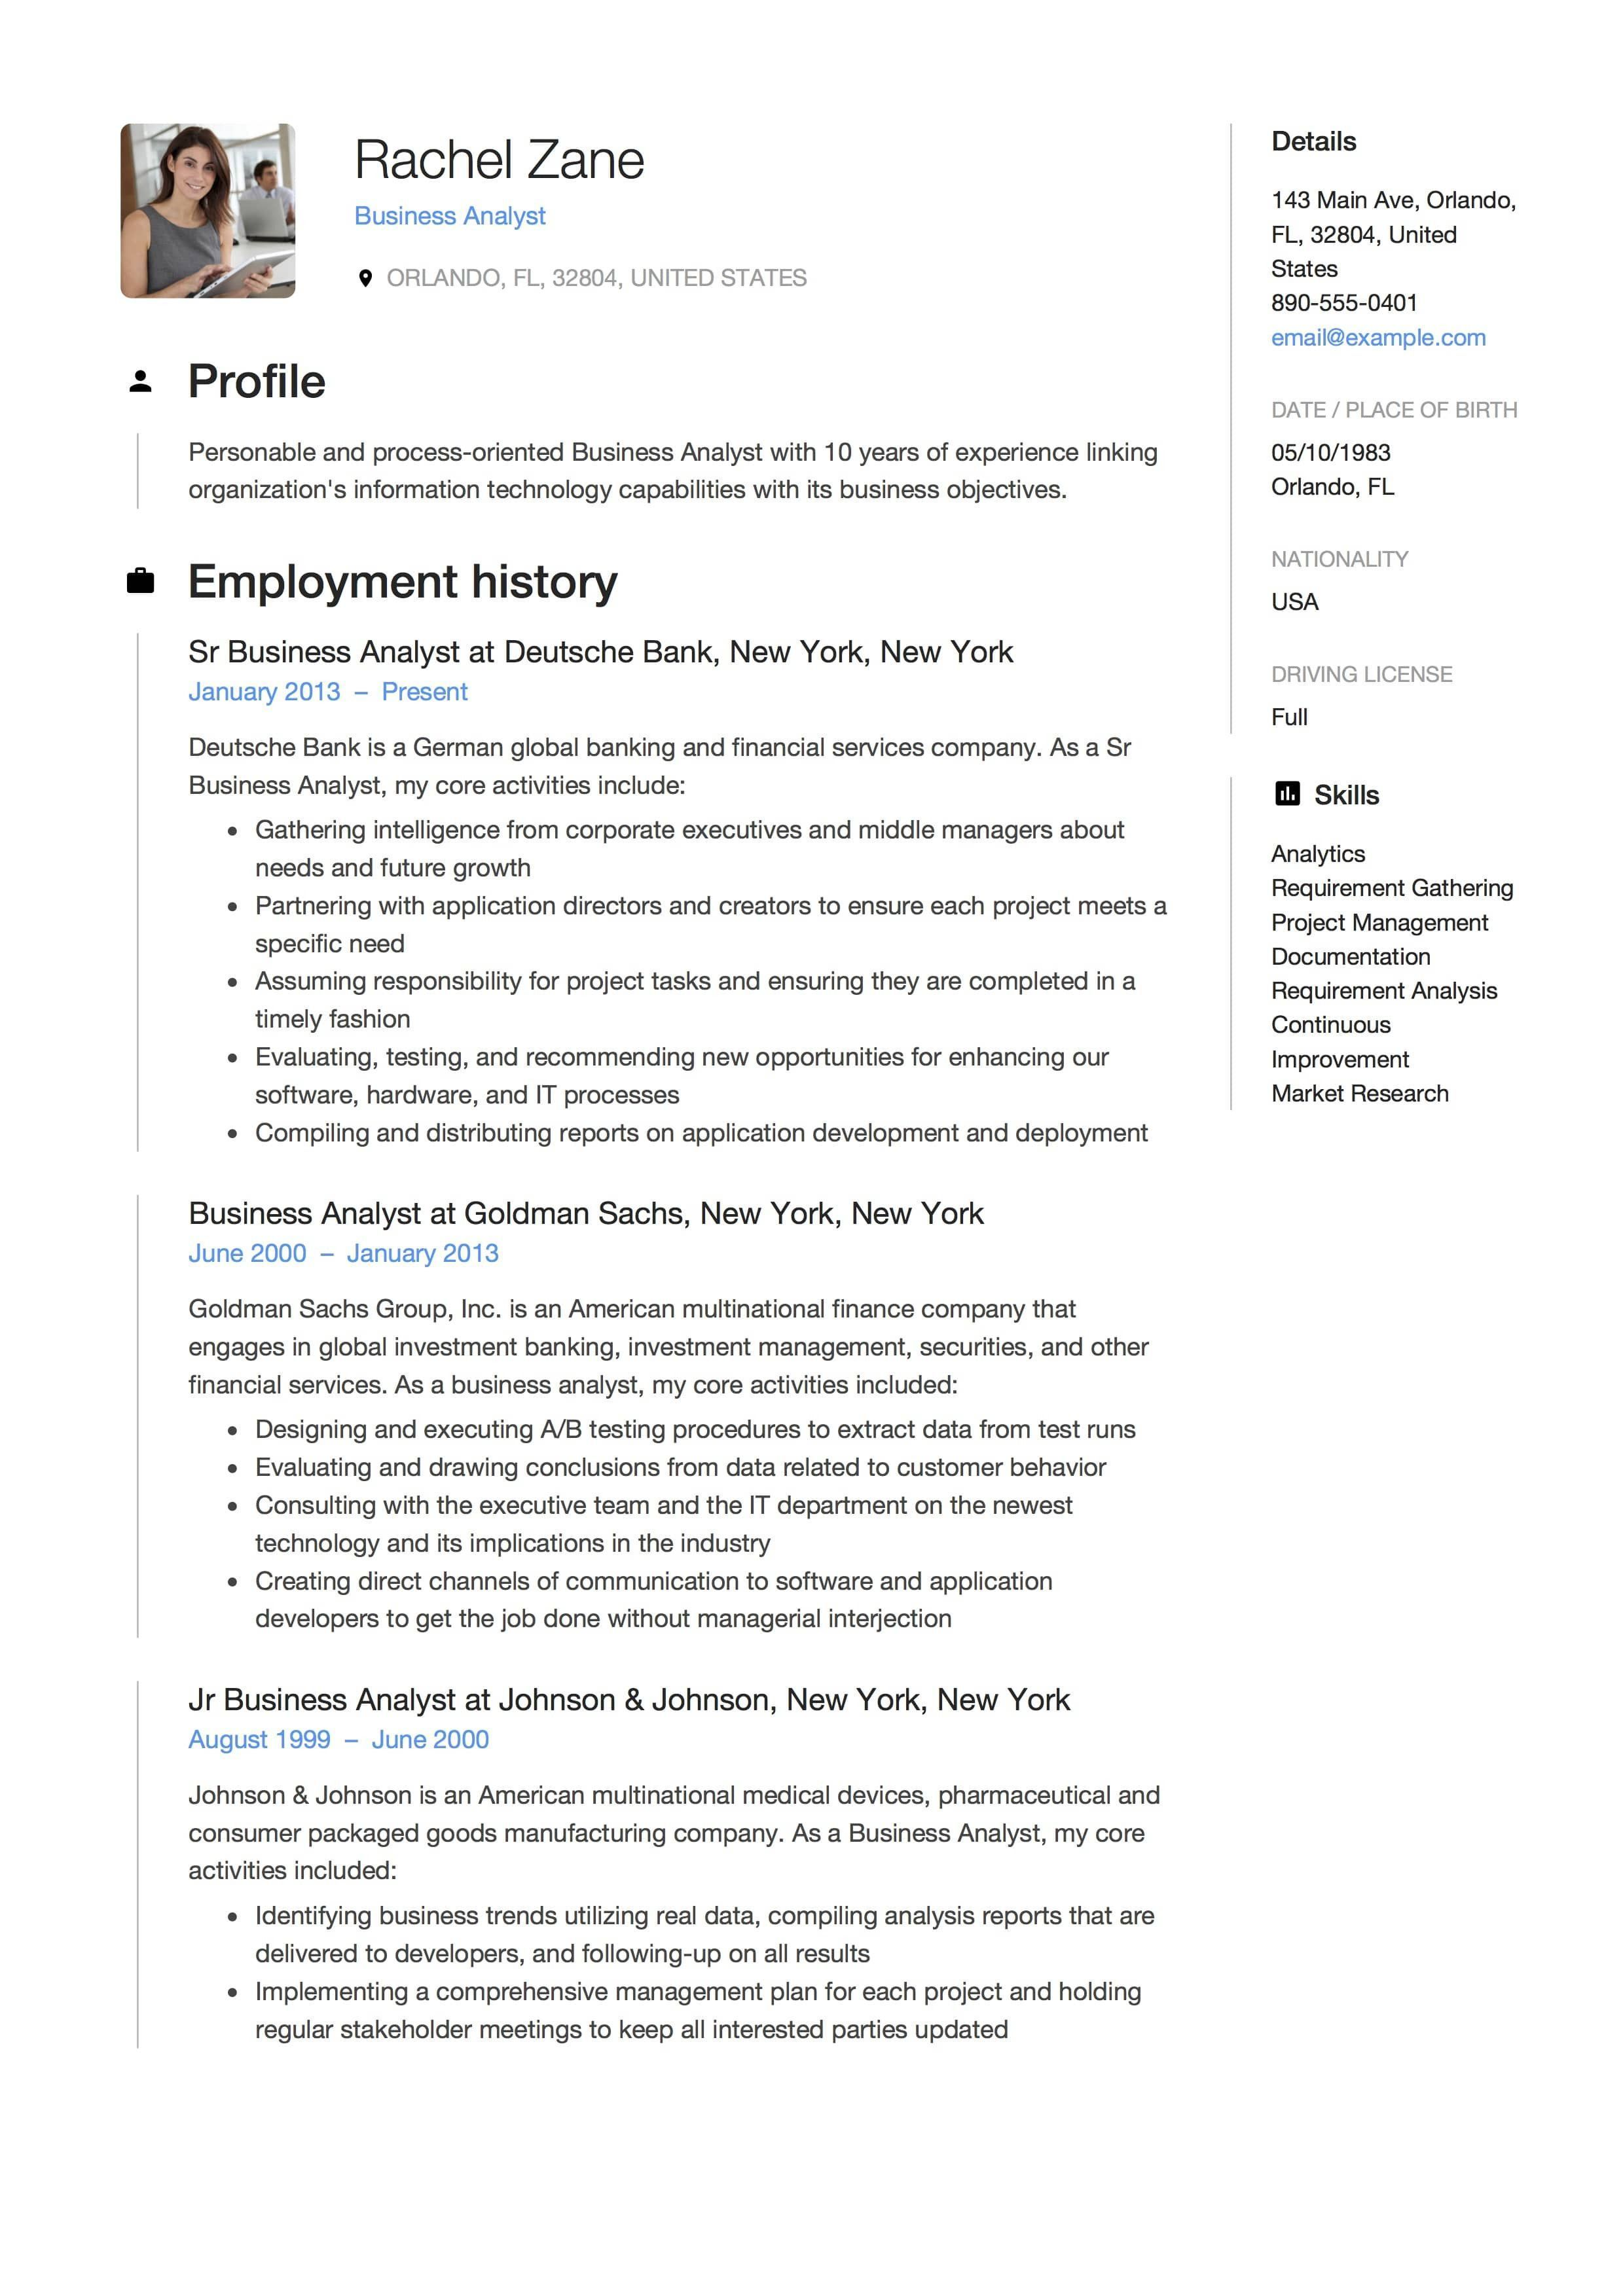 Business Analyst Resume Examples Graceful Full Guide Project